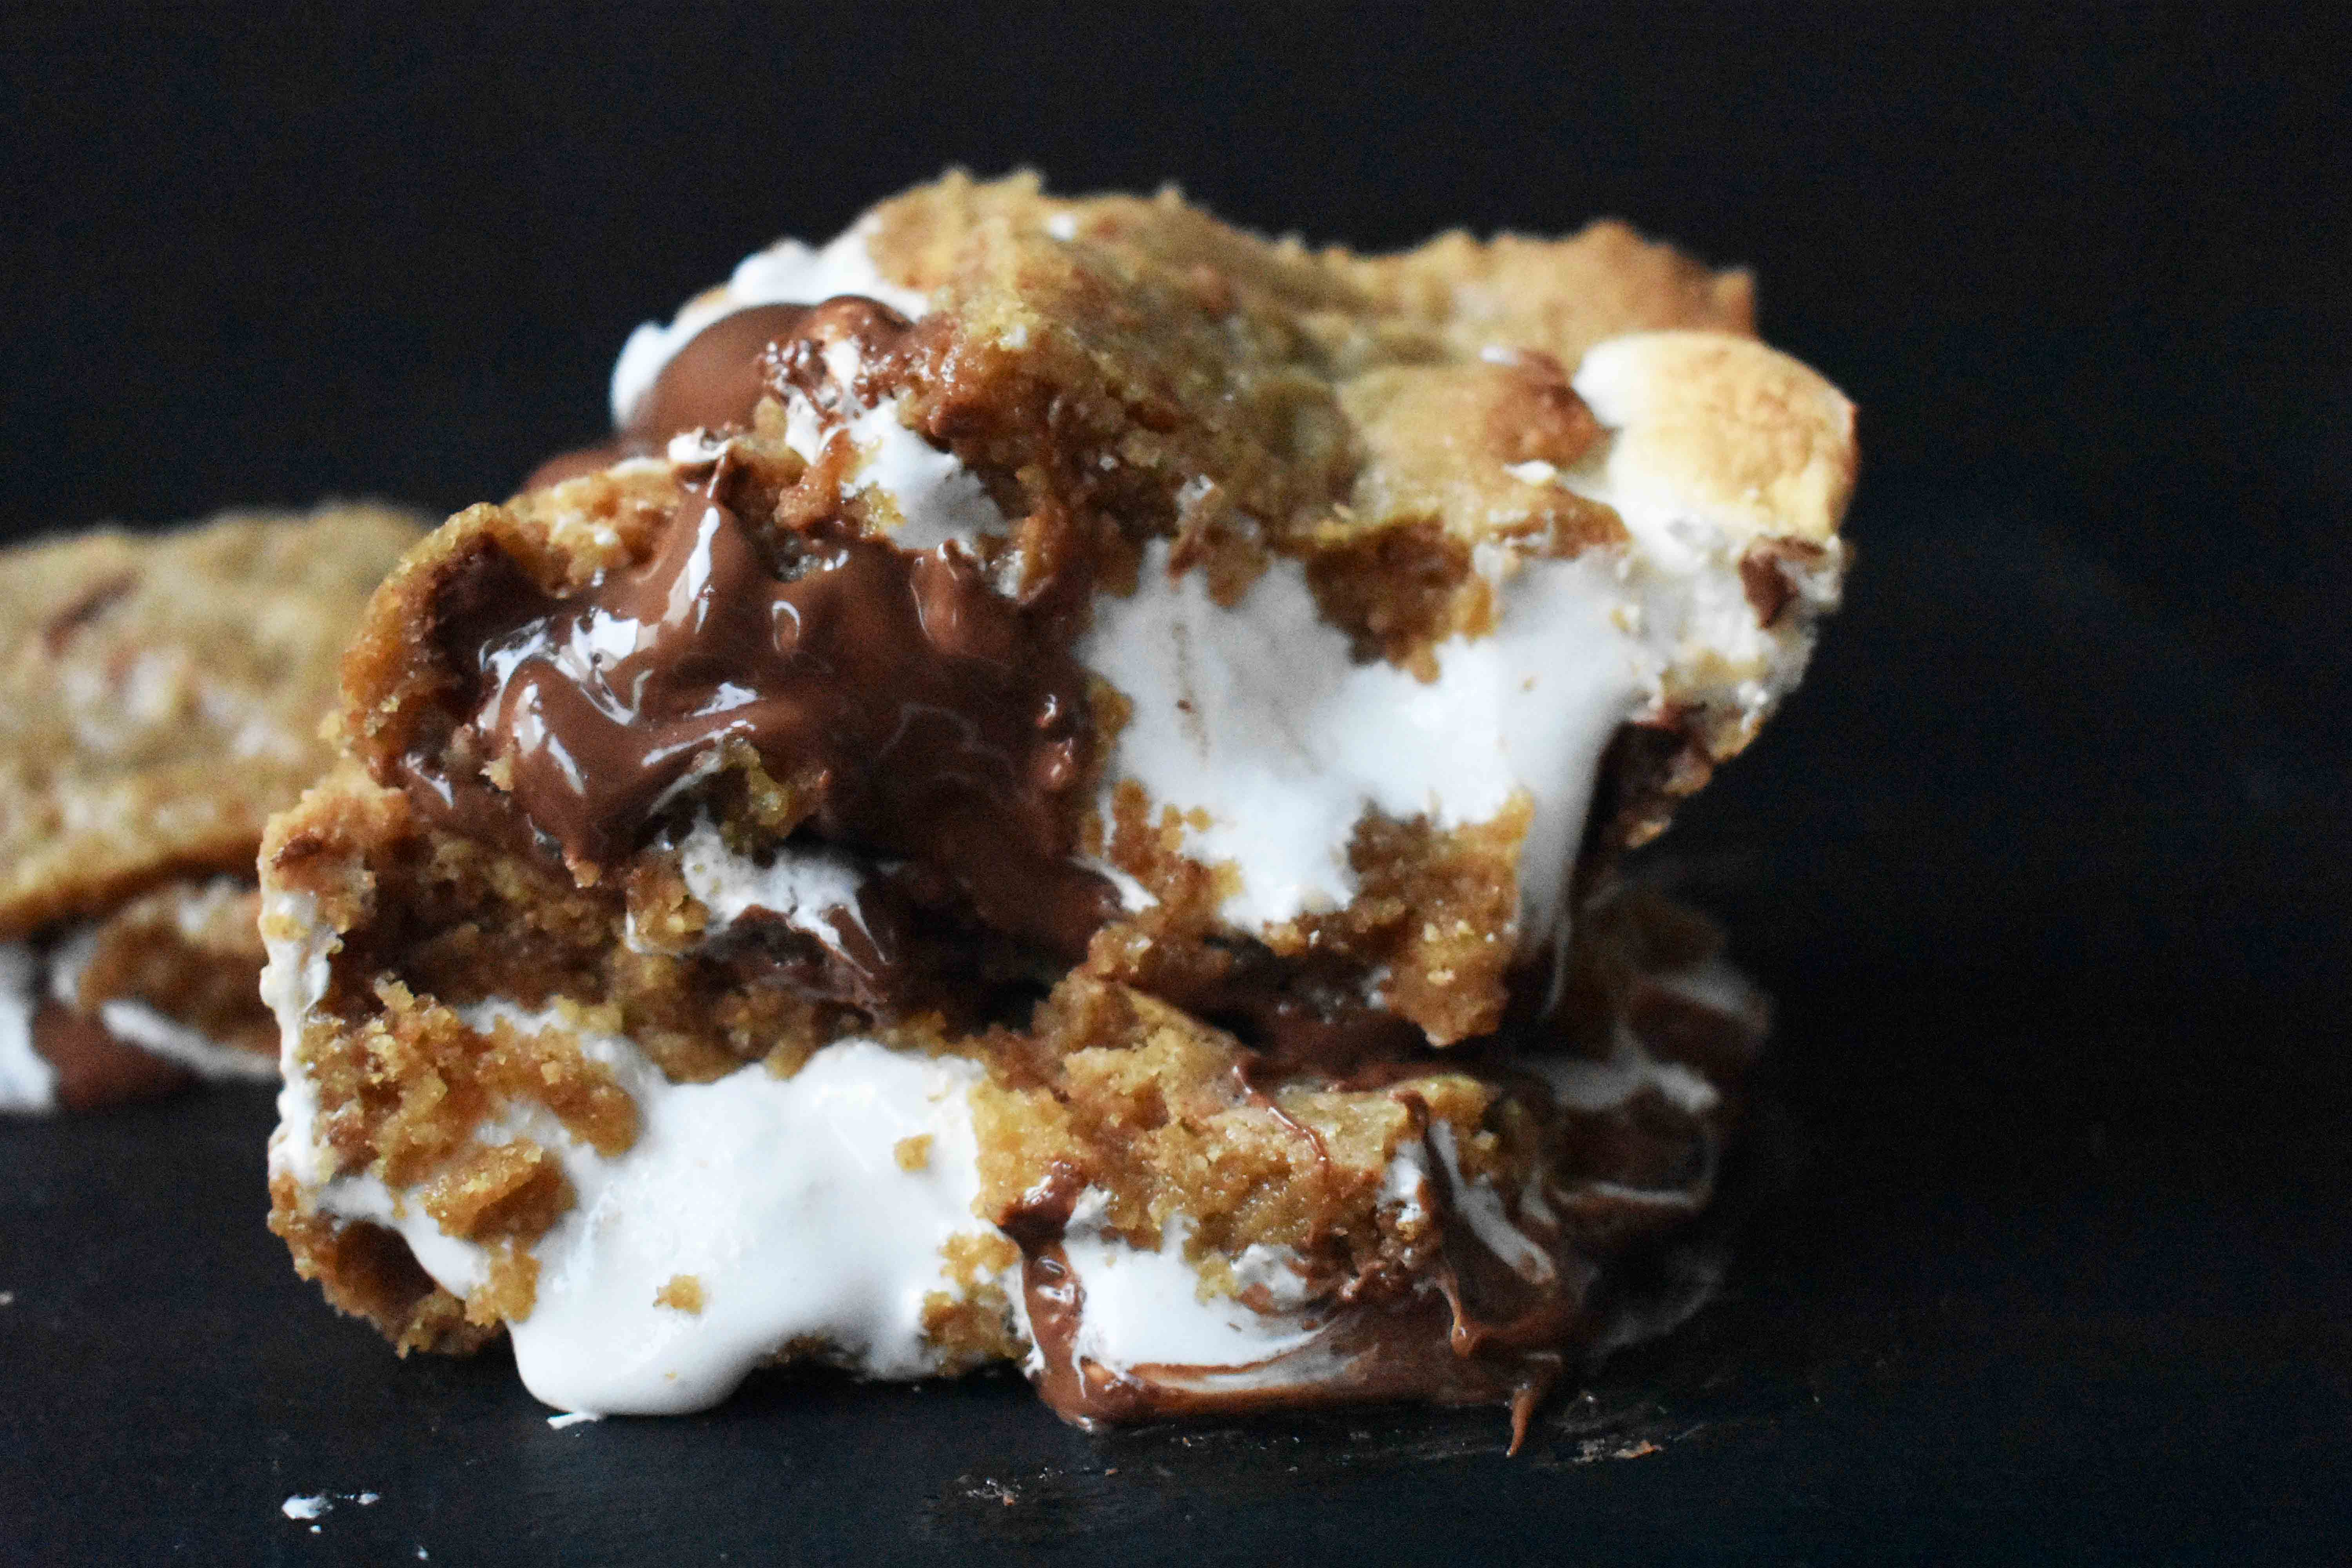 S'mores Bars made with homemade graham cracker cookie dough, marshmallow fluff, and milk chocolate bars. The popular s'more made into a cookie bar. www.modernhoney.com